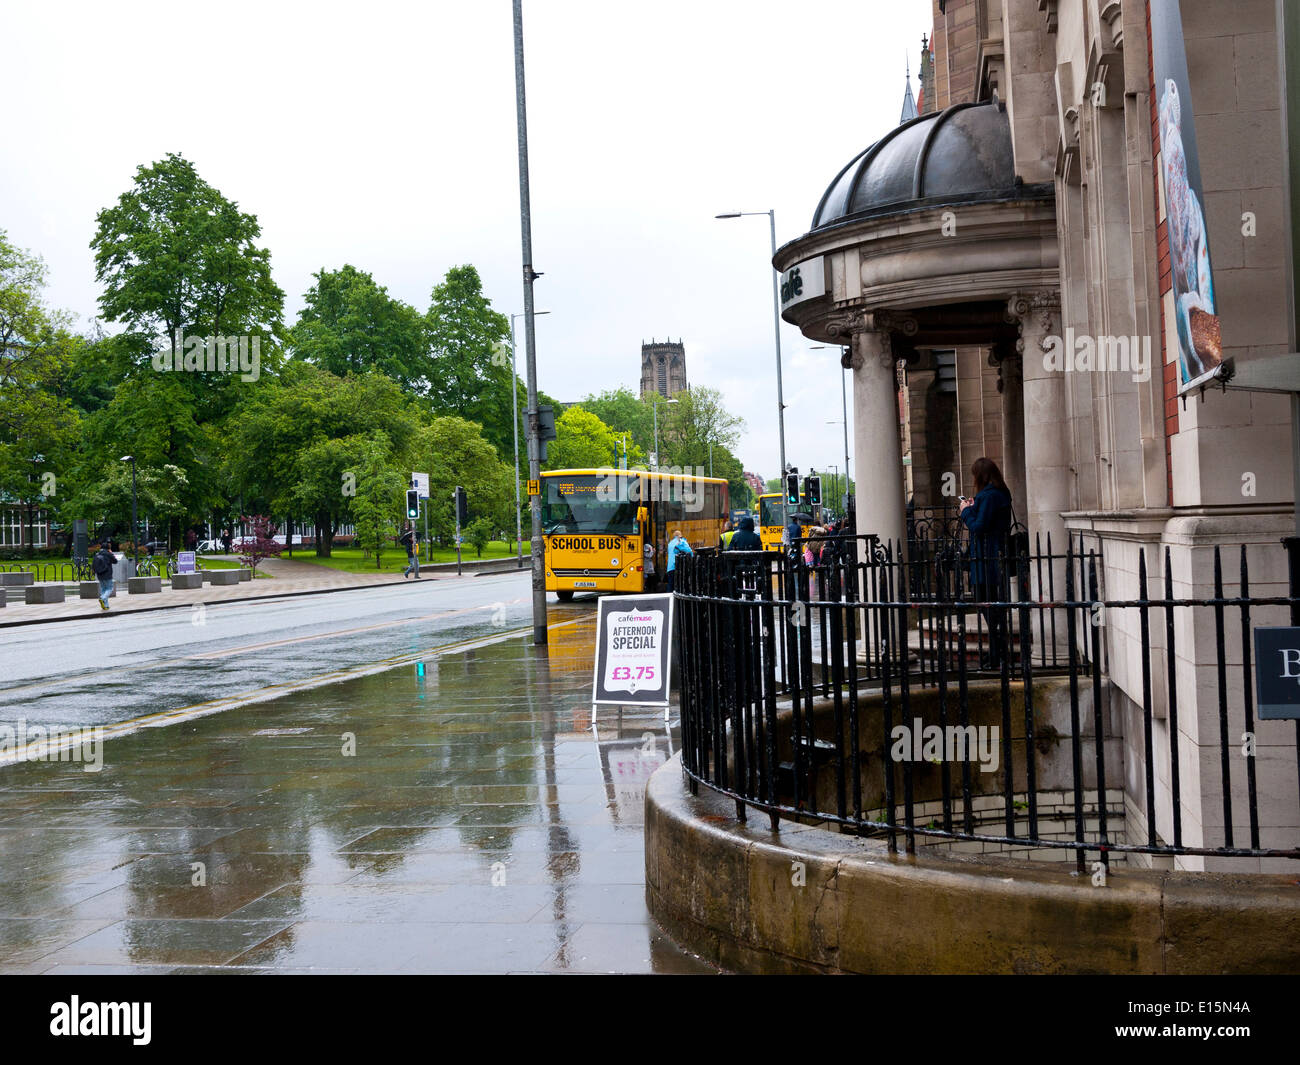 Oxford Street in the rain, Manchester,England, UK. - Stock Image